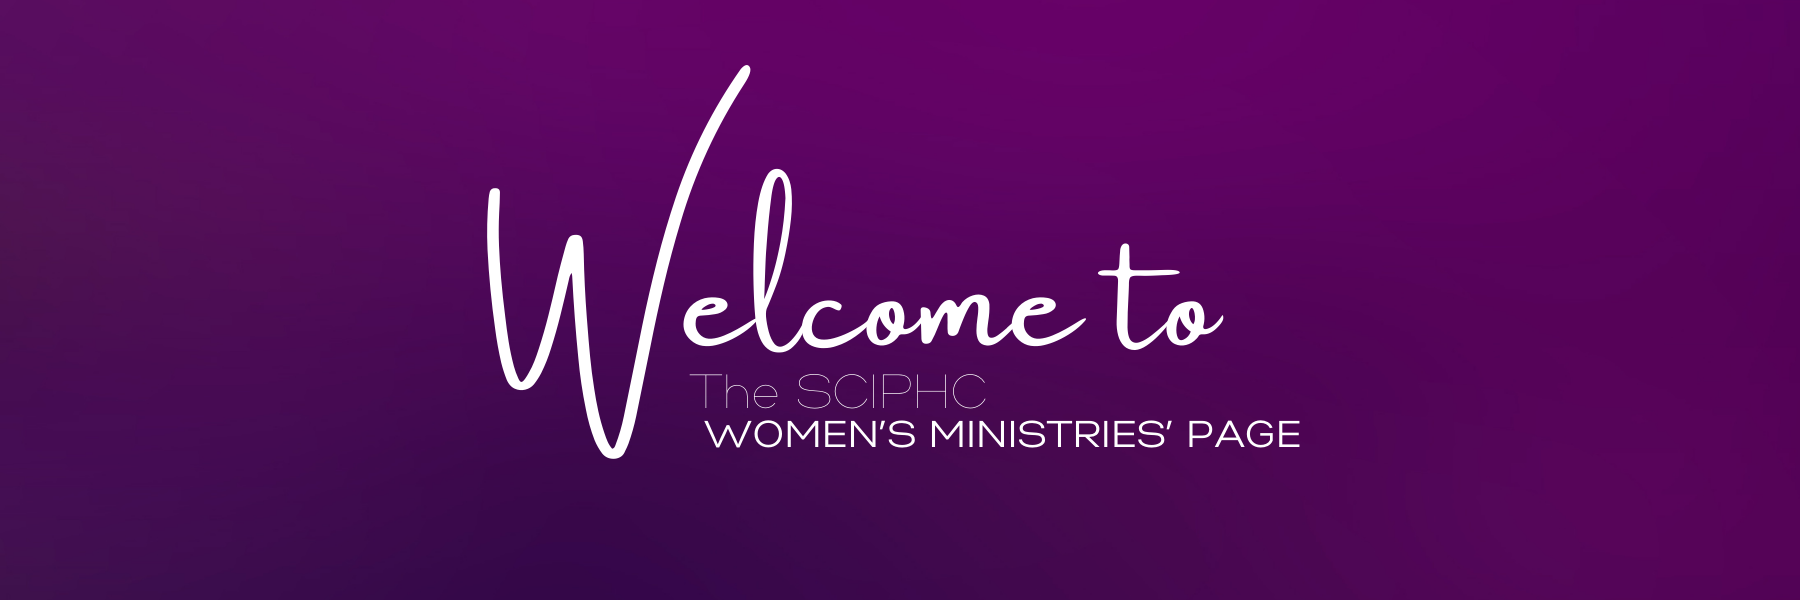 Welcome to the South Carolina Women's Ministries' page.